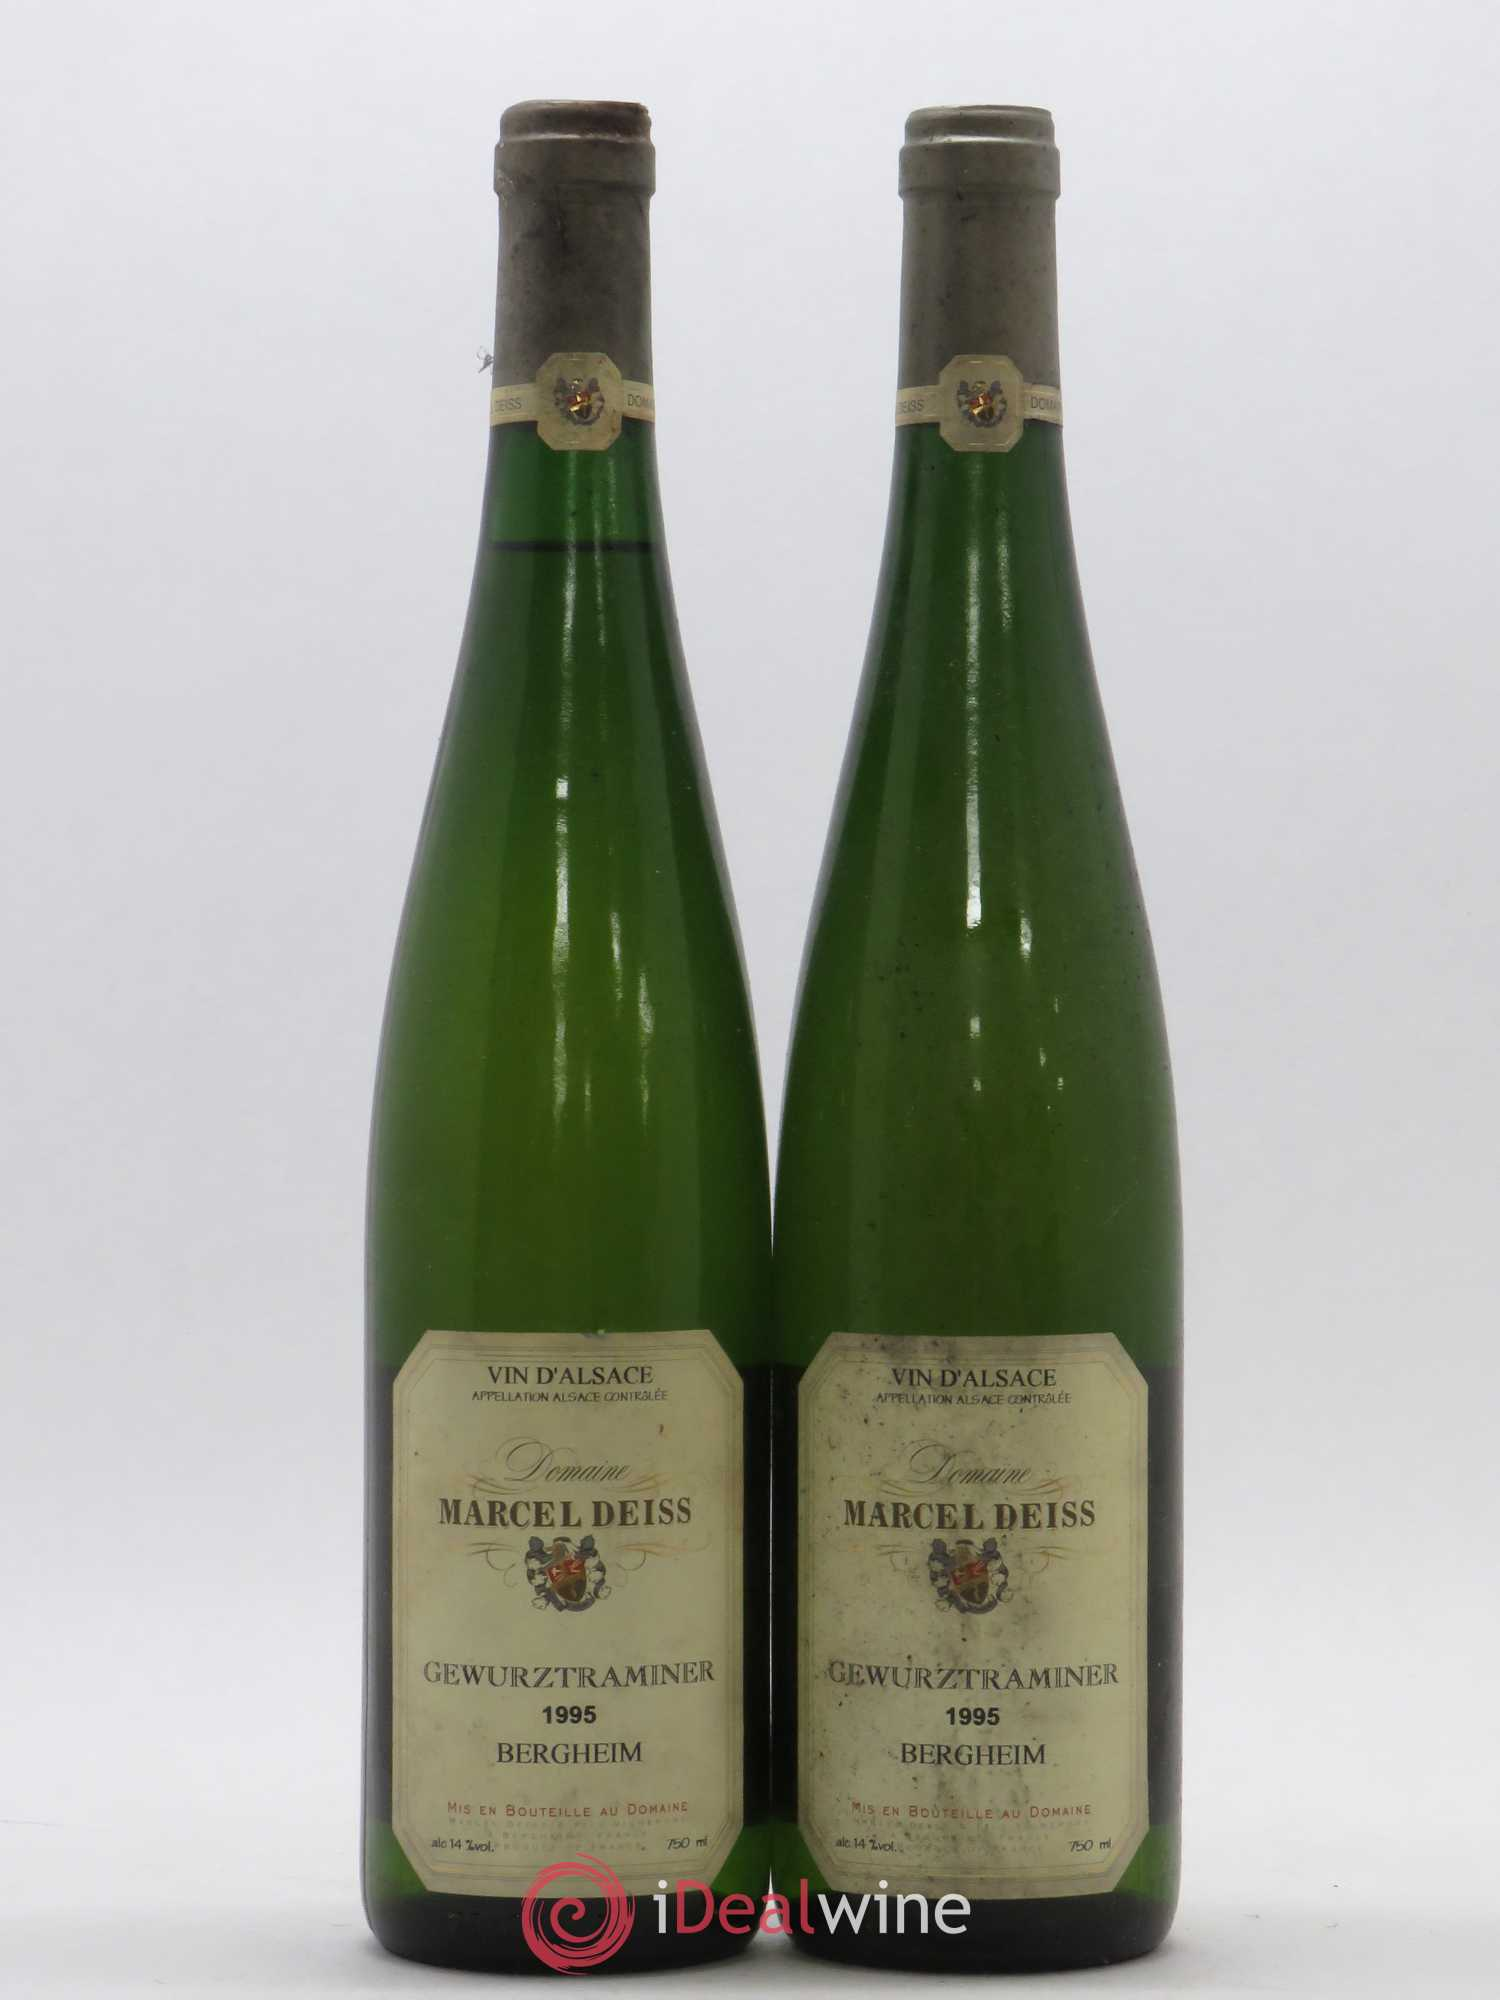 Gewurztraminer Marcel Deiss (Domaine) Bergheim 1995 - Lot of 2 Bottles